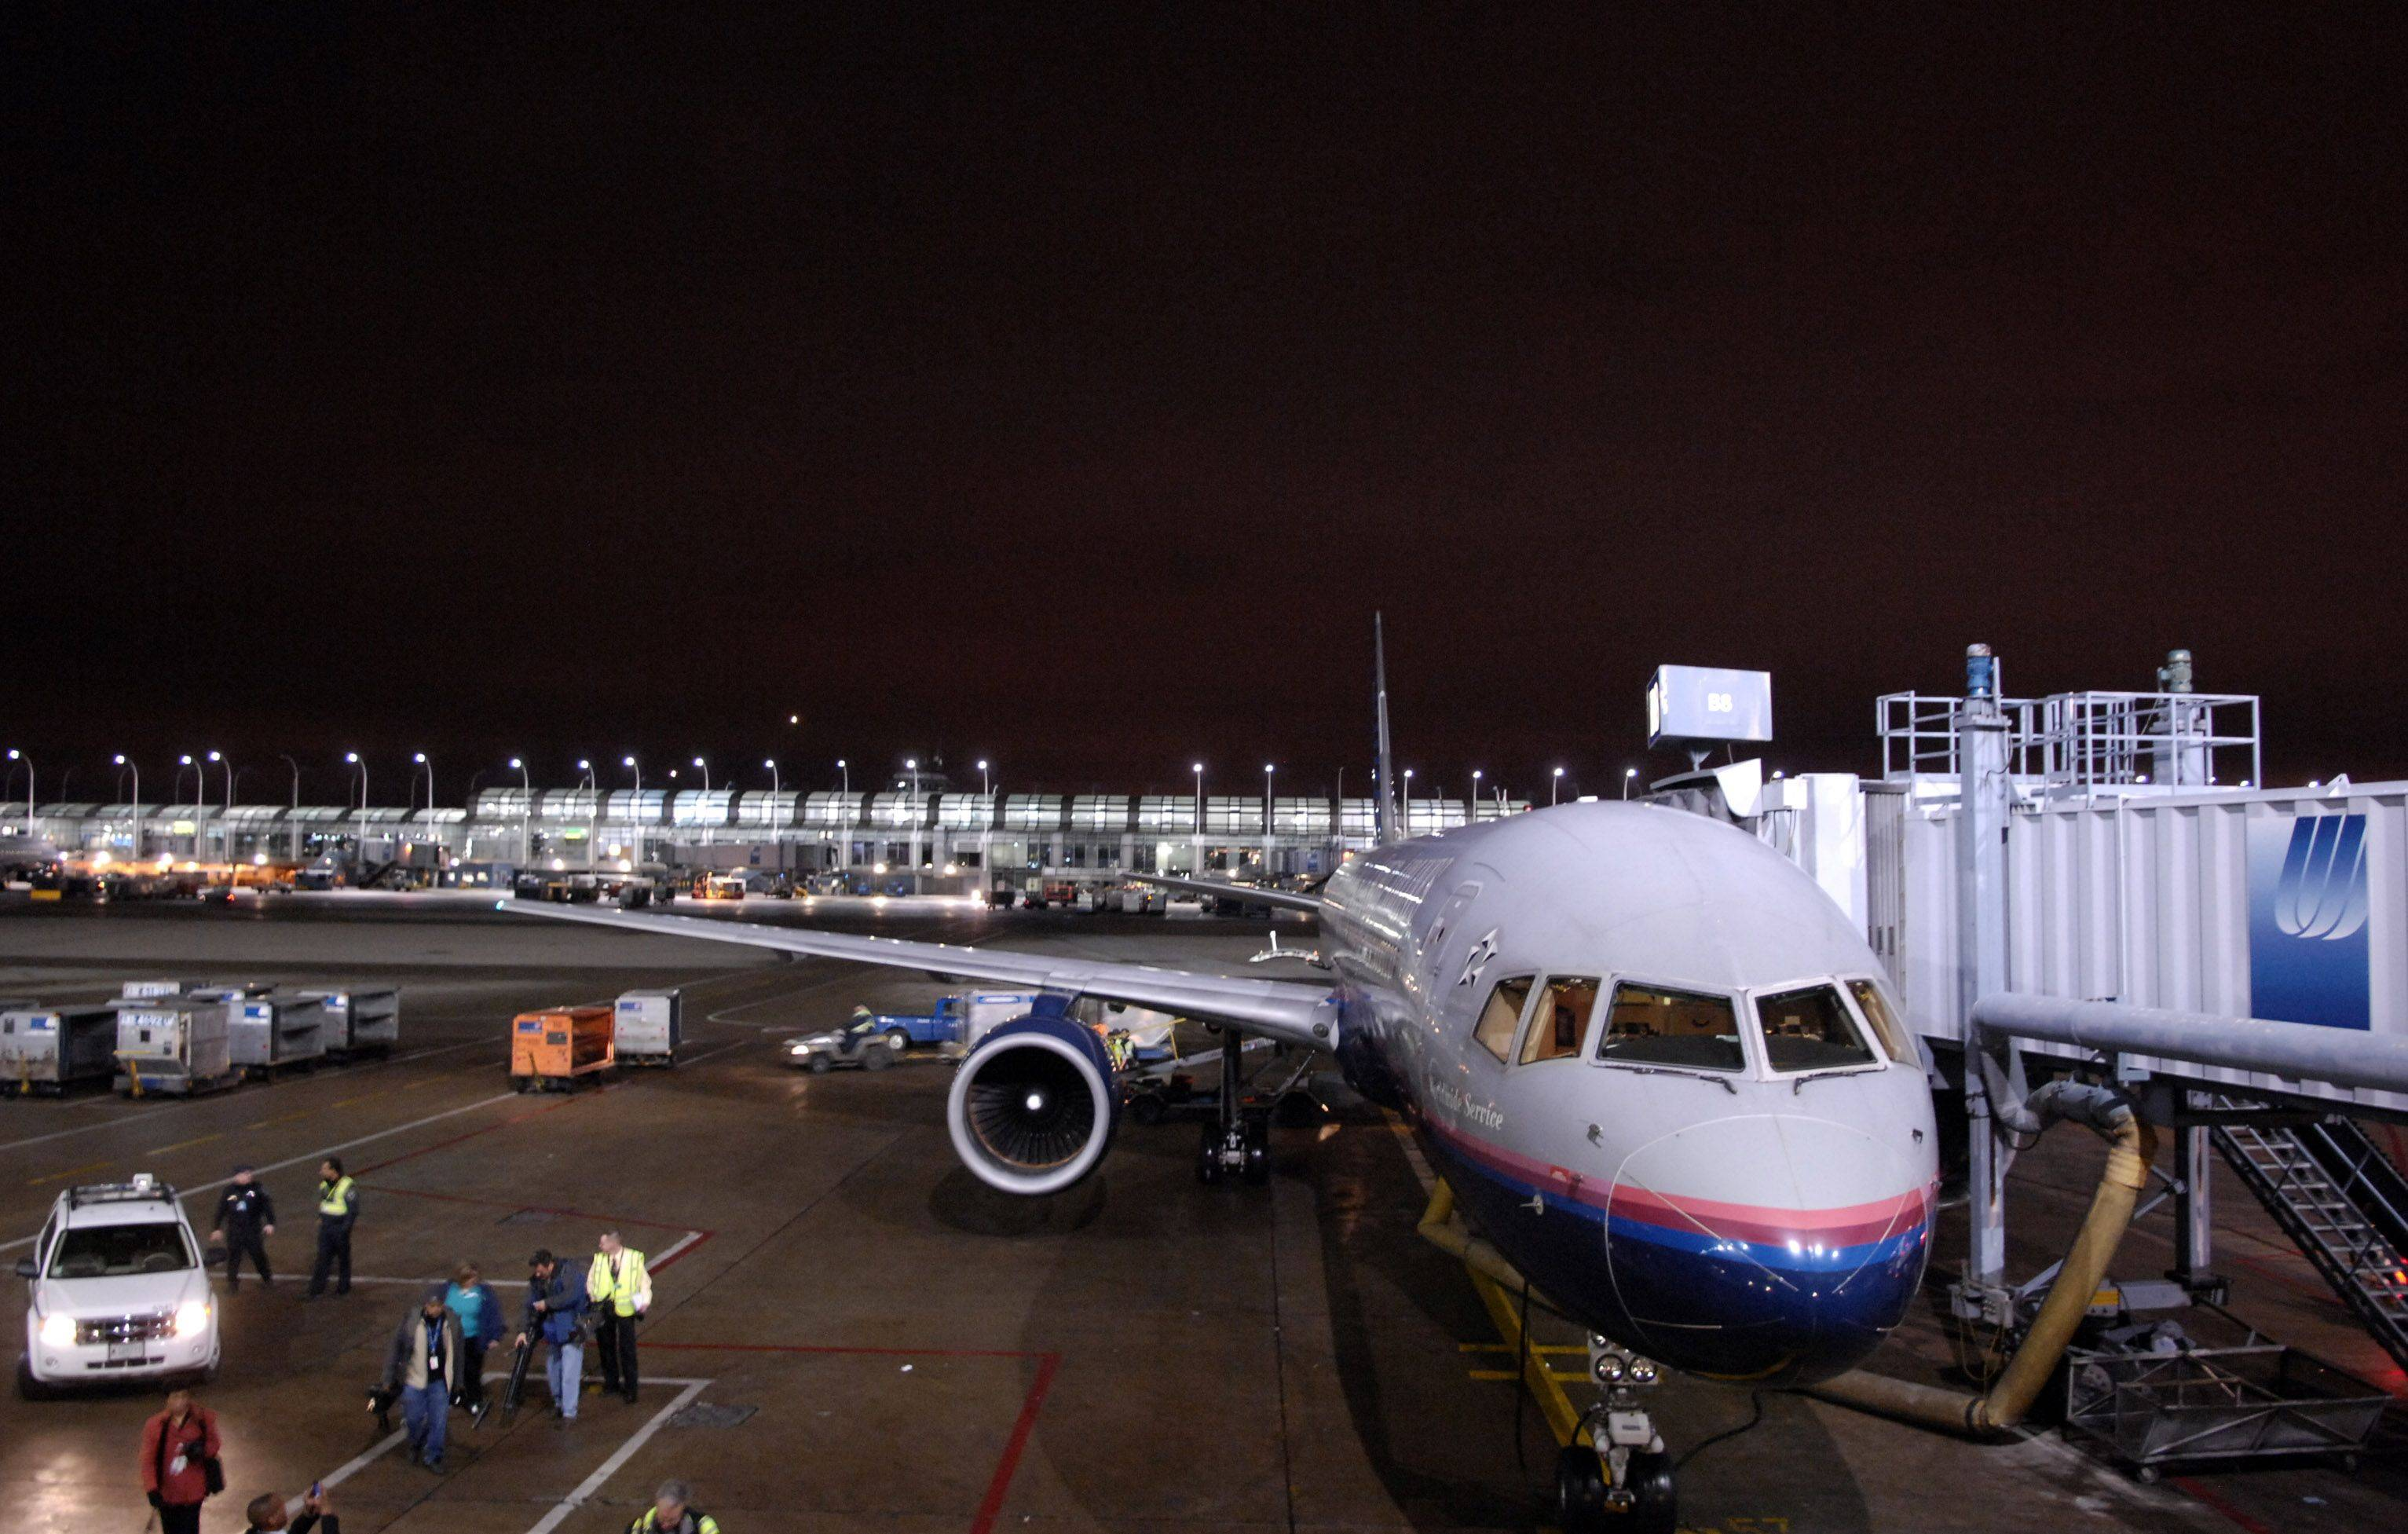 United Airlines loads its first relief flight to Haiti with cargo from Walgreens as well as other companies and relief groups. Relief workers are headed there as well.